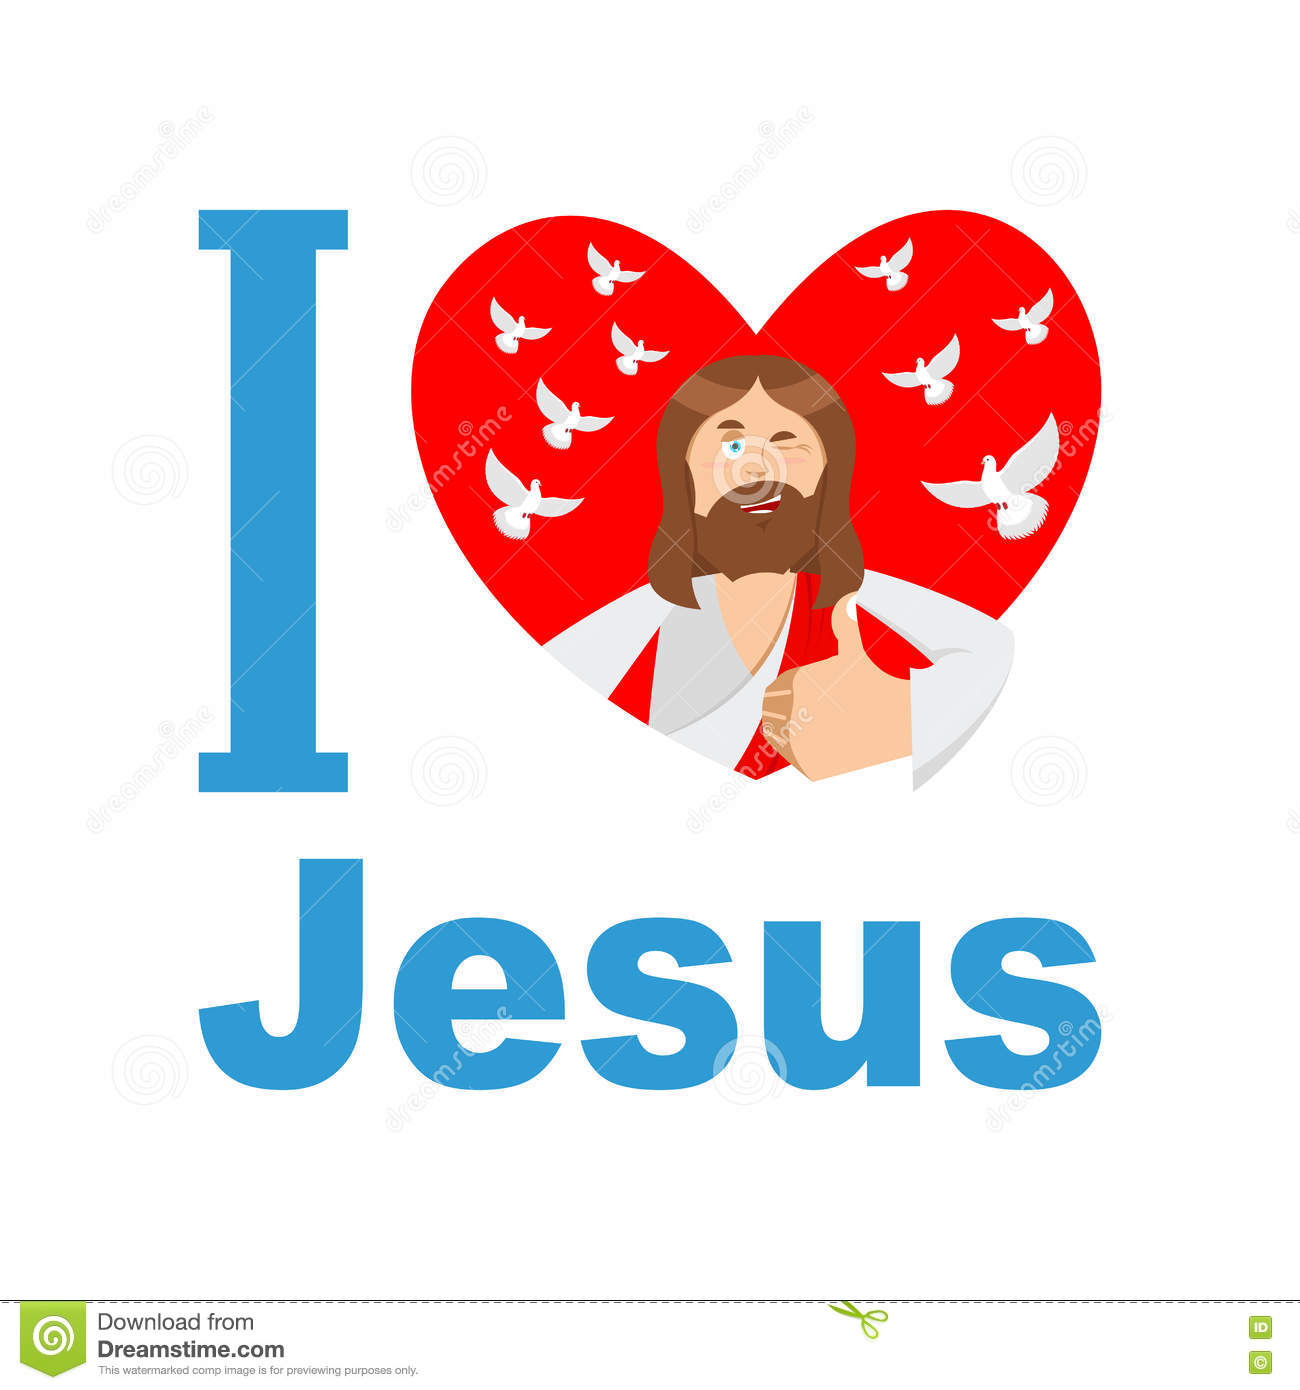 Christian love symbol stock photos 7100 images symbol of heart and son of god biblical character s biocorpaavc Image collections